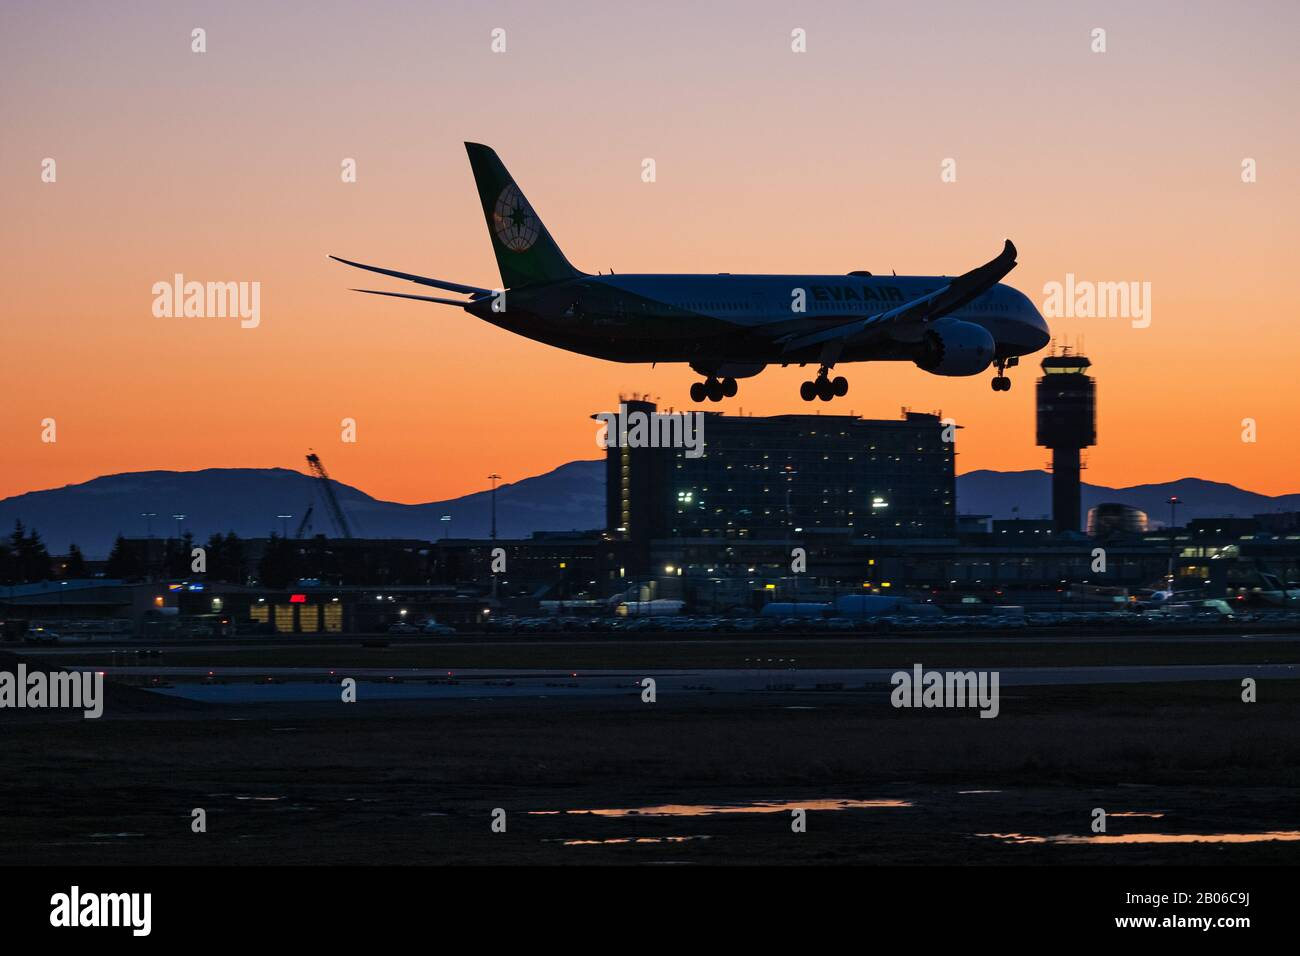 Richmond, British Columbia, Canada. 18th Feb, 2020. An EVA Air Boeing 787-9 Dreamliner (B-17883) wide-body jet lands at sunset, Vancouver International Airport. Credit: Bayne Stanley/ZUMA Wire/Alamy Live News Stock Photo